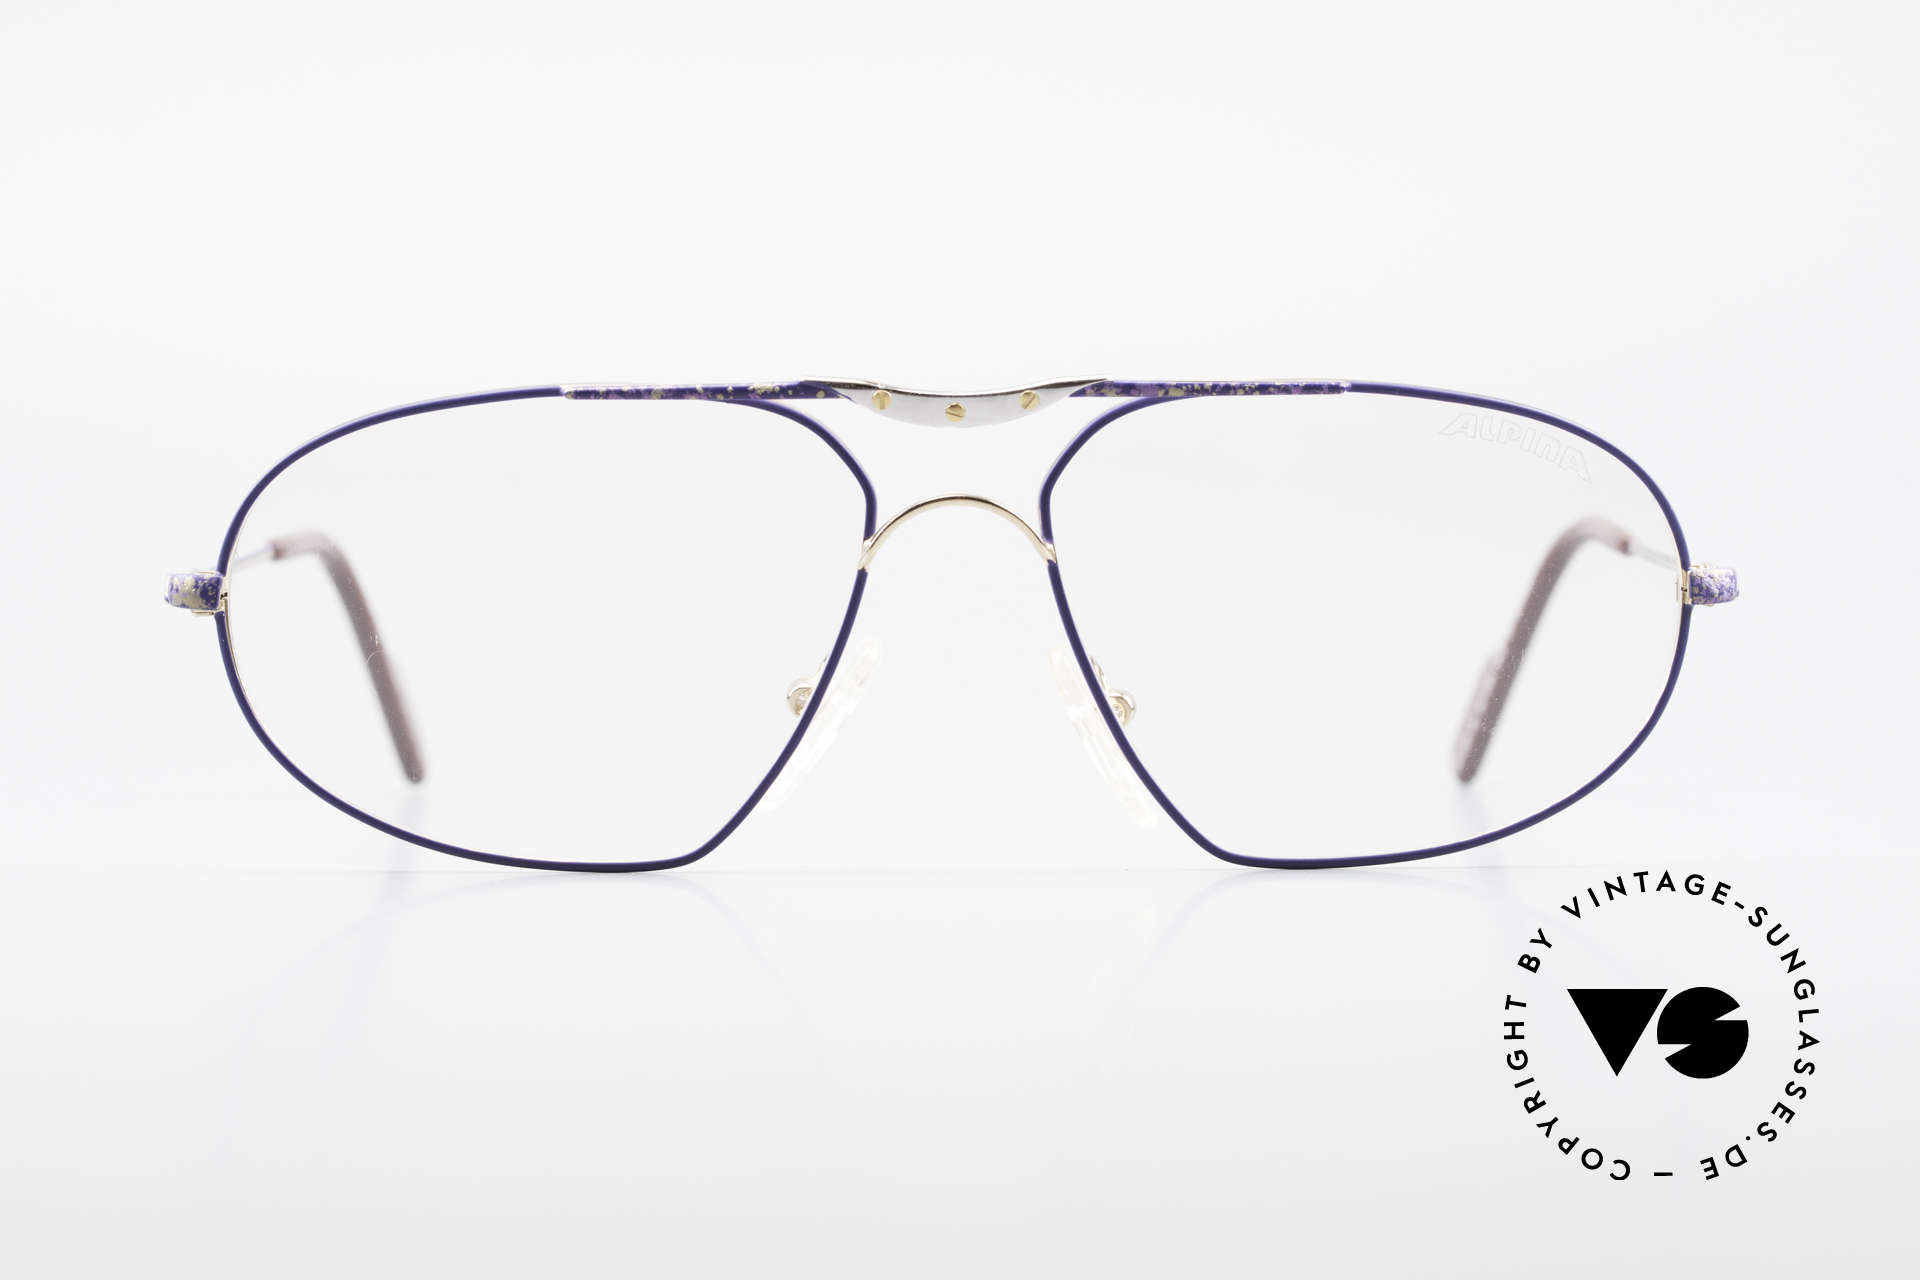 Alpina M1F755 Old Classic Men's Eyeglasses, timeless design & TOP-quality (made in GERMANY), Made for Men